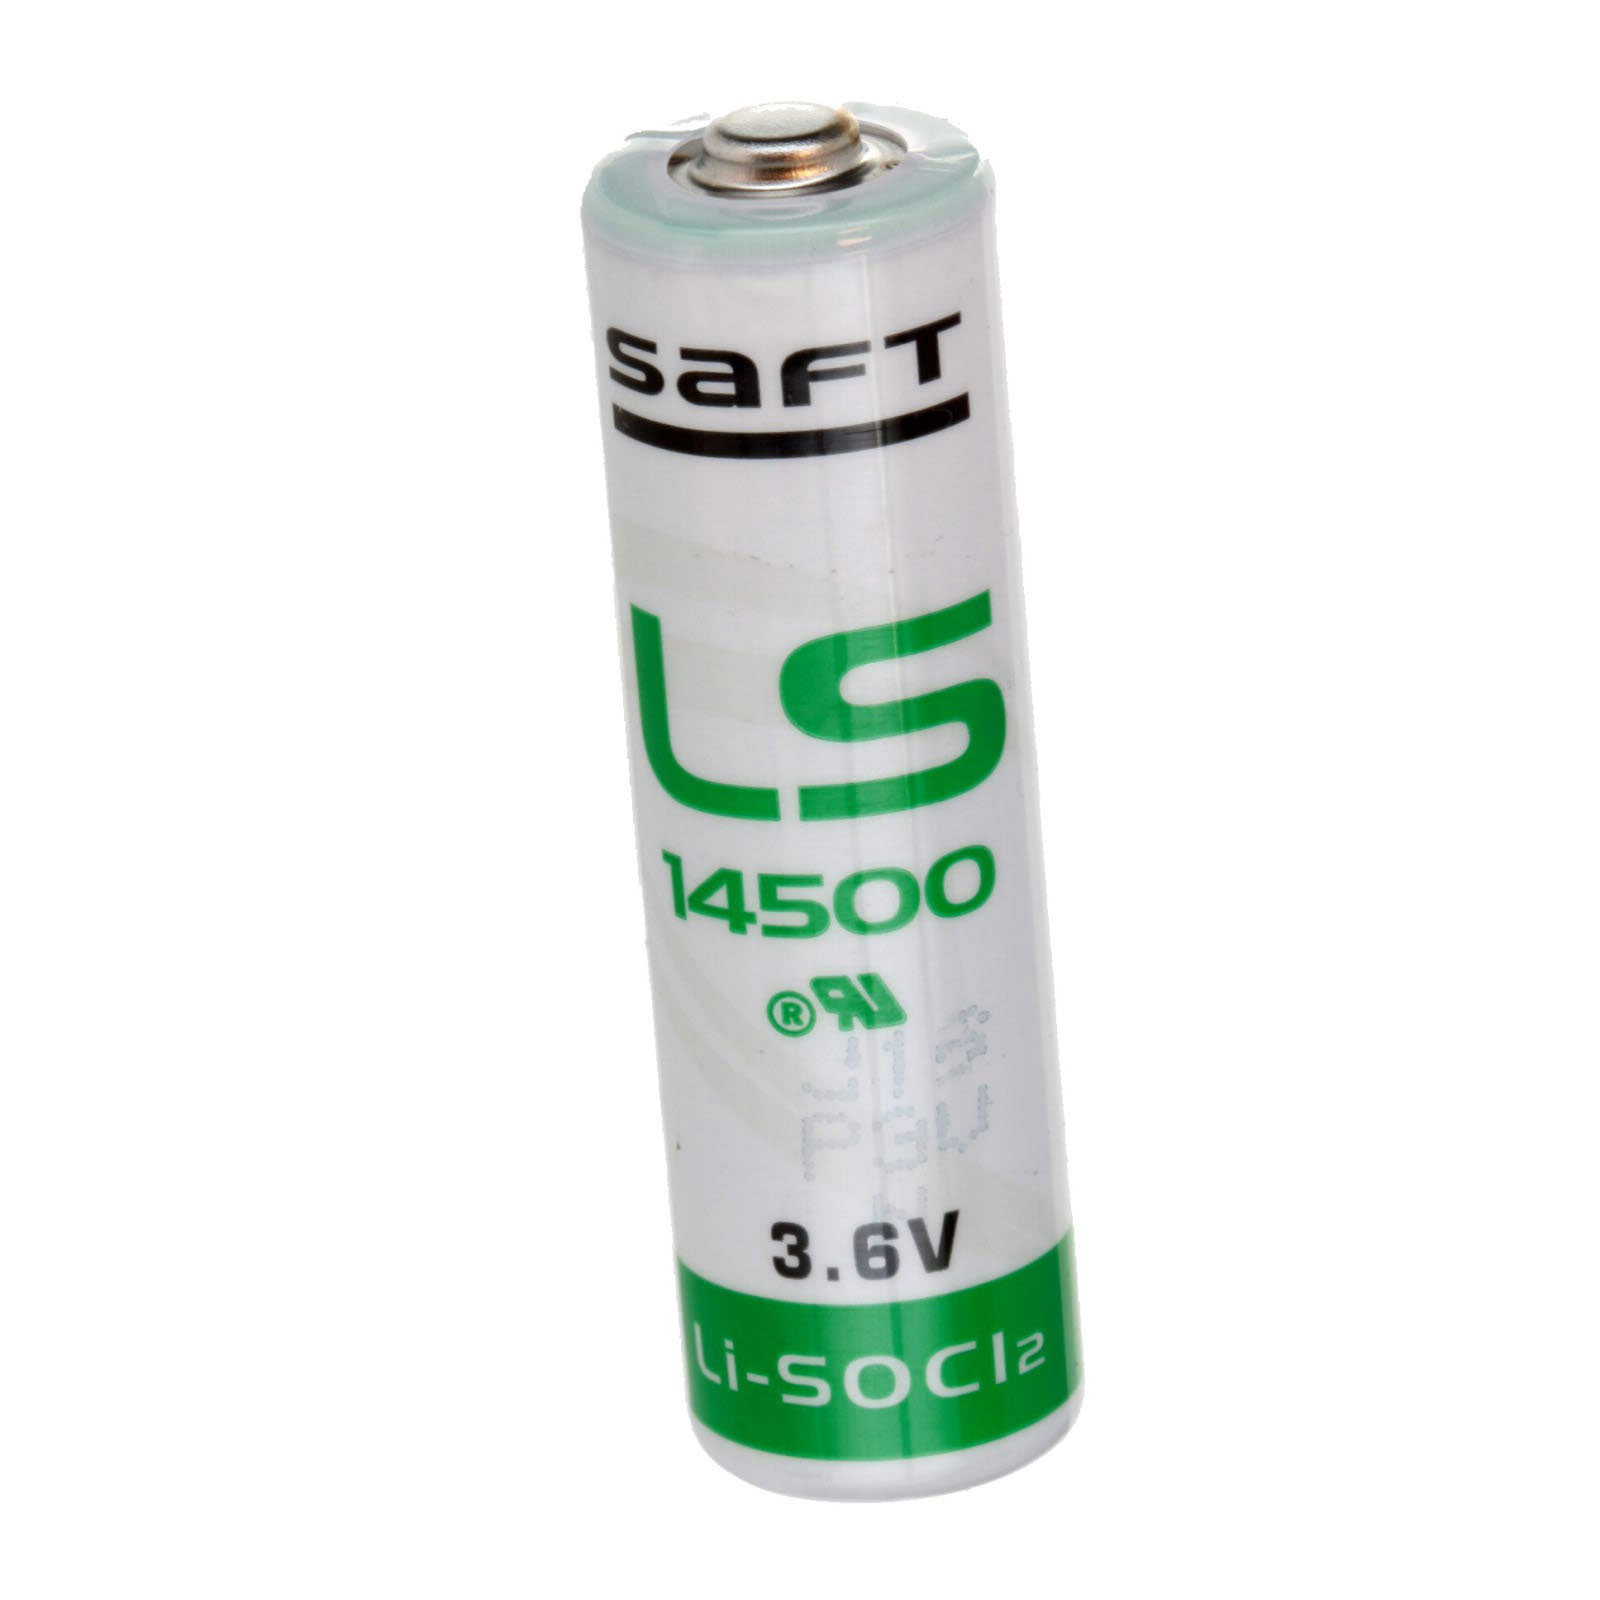 saft ls14500 aa battery 3 6v 2600mah lithium replaces maxell tadiran and more ebay. Black Bedroom Furniture Sets. Home Design Ideas